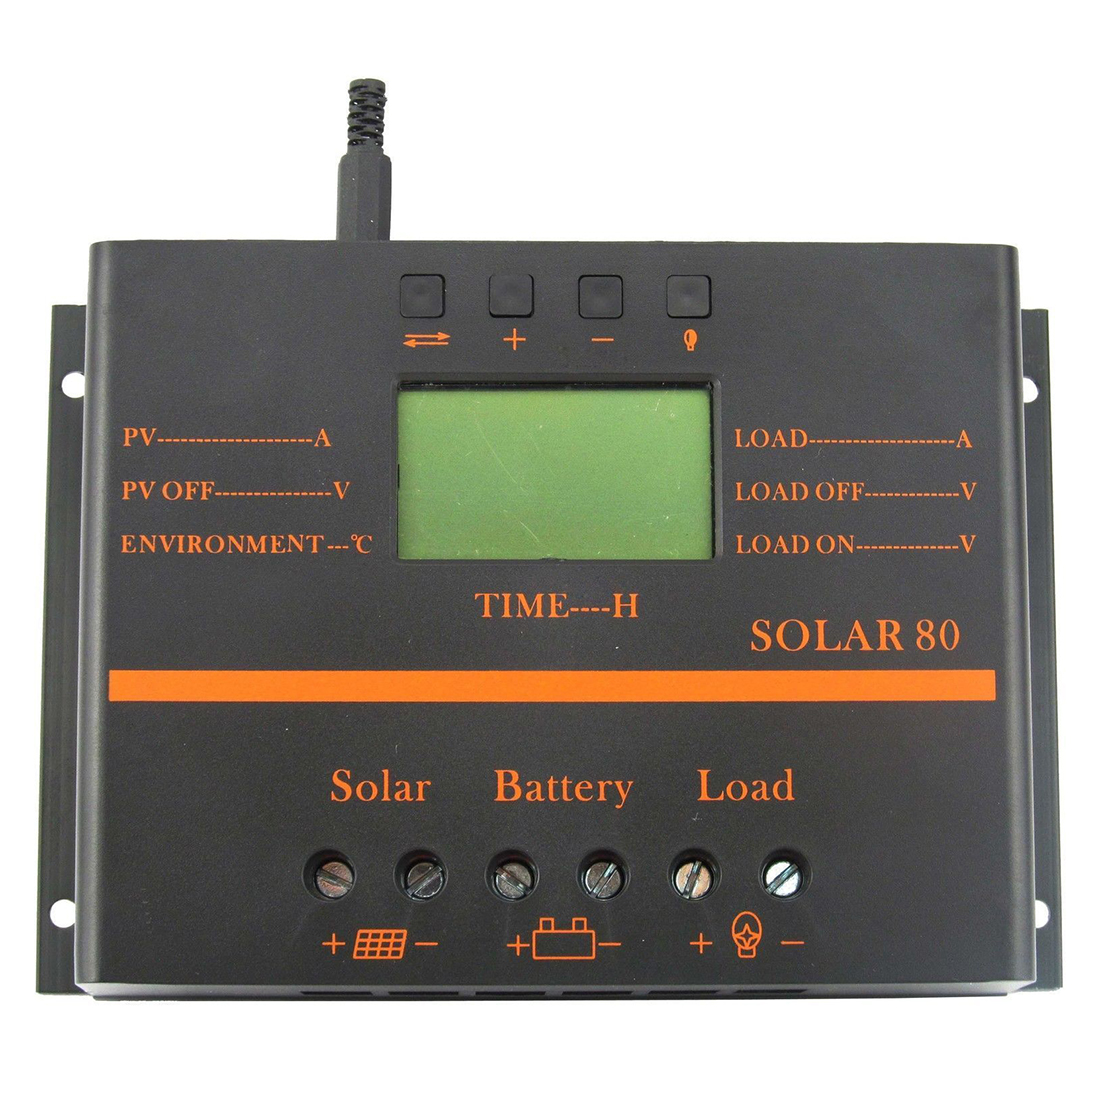 80A LCD Solar Panel Battery Regulator Charge Discharge Controller 12V 24V & USB 60a pwm auto switch intelligent solar charger controller 12v 24v lcd display discharge with usb fr solar battery panel regulator